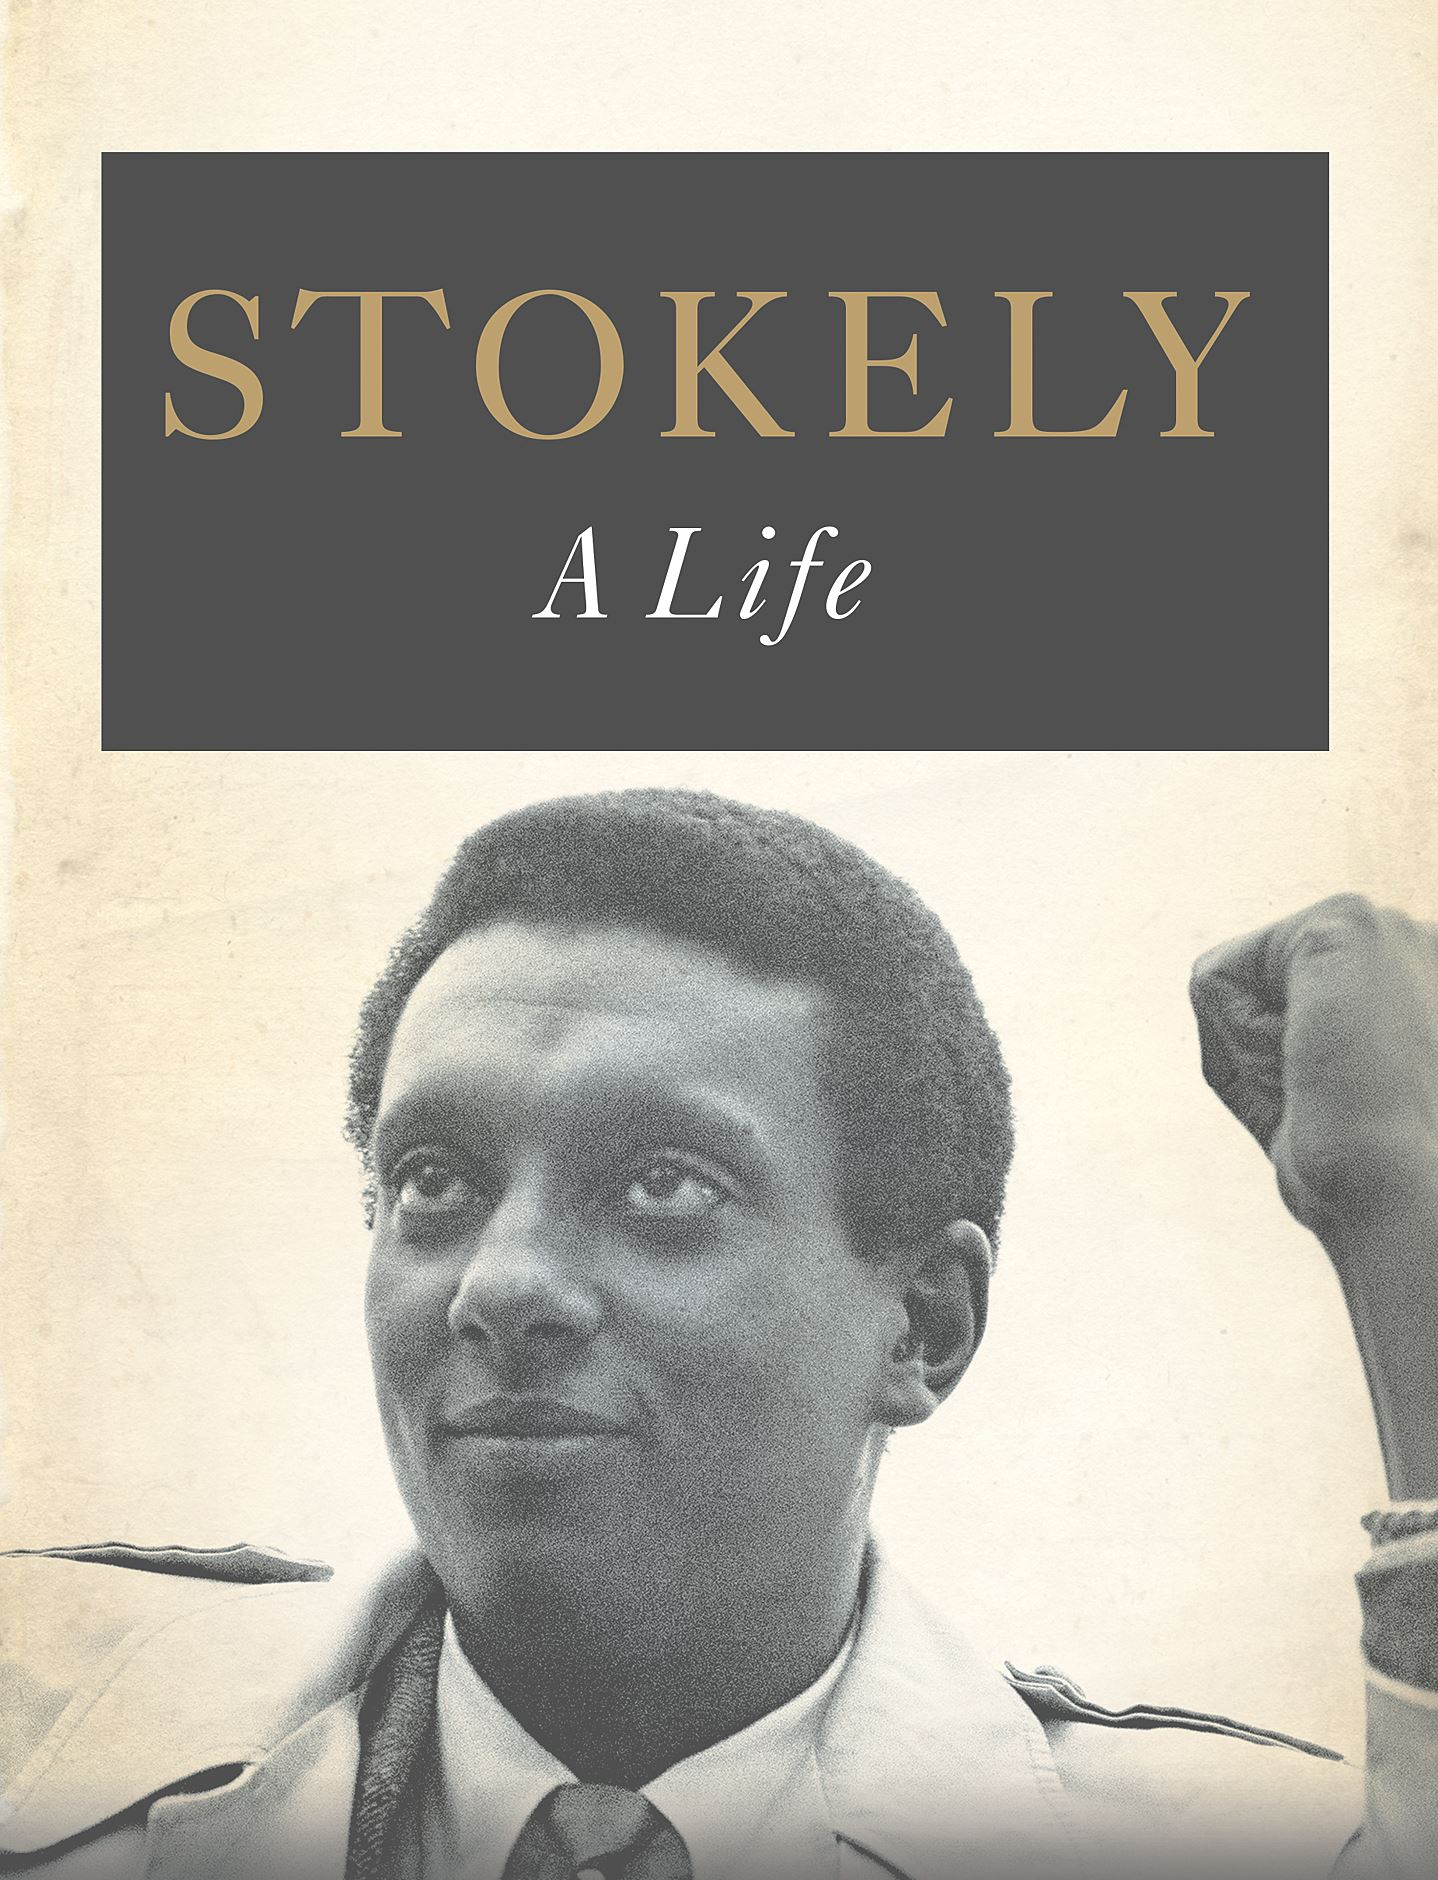 the life and leadership of stokely carmichael National leadership stokely carmichael has also conferred several times with members of black national groups, such as, the nation of islam (noi) and rah b.